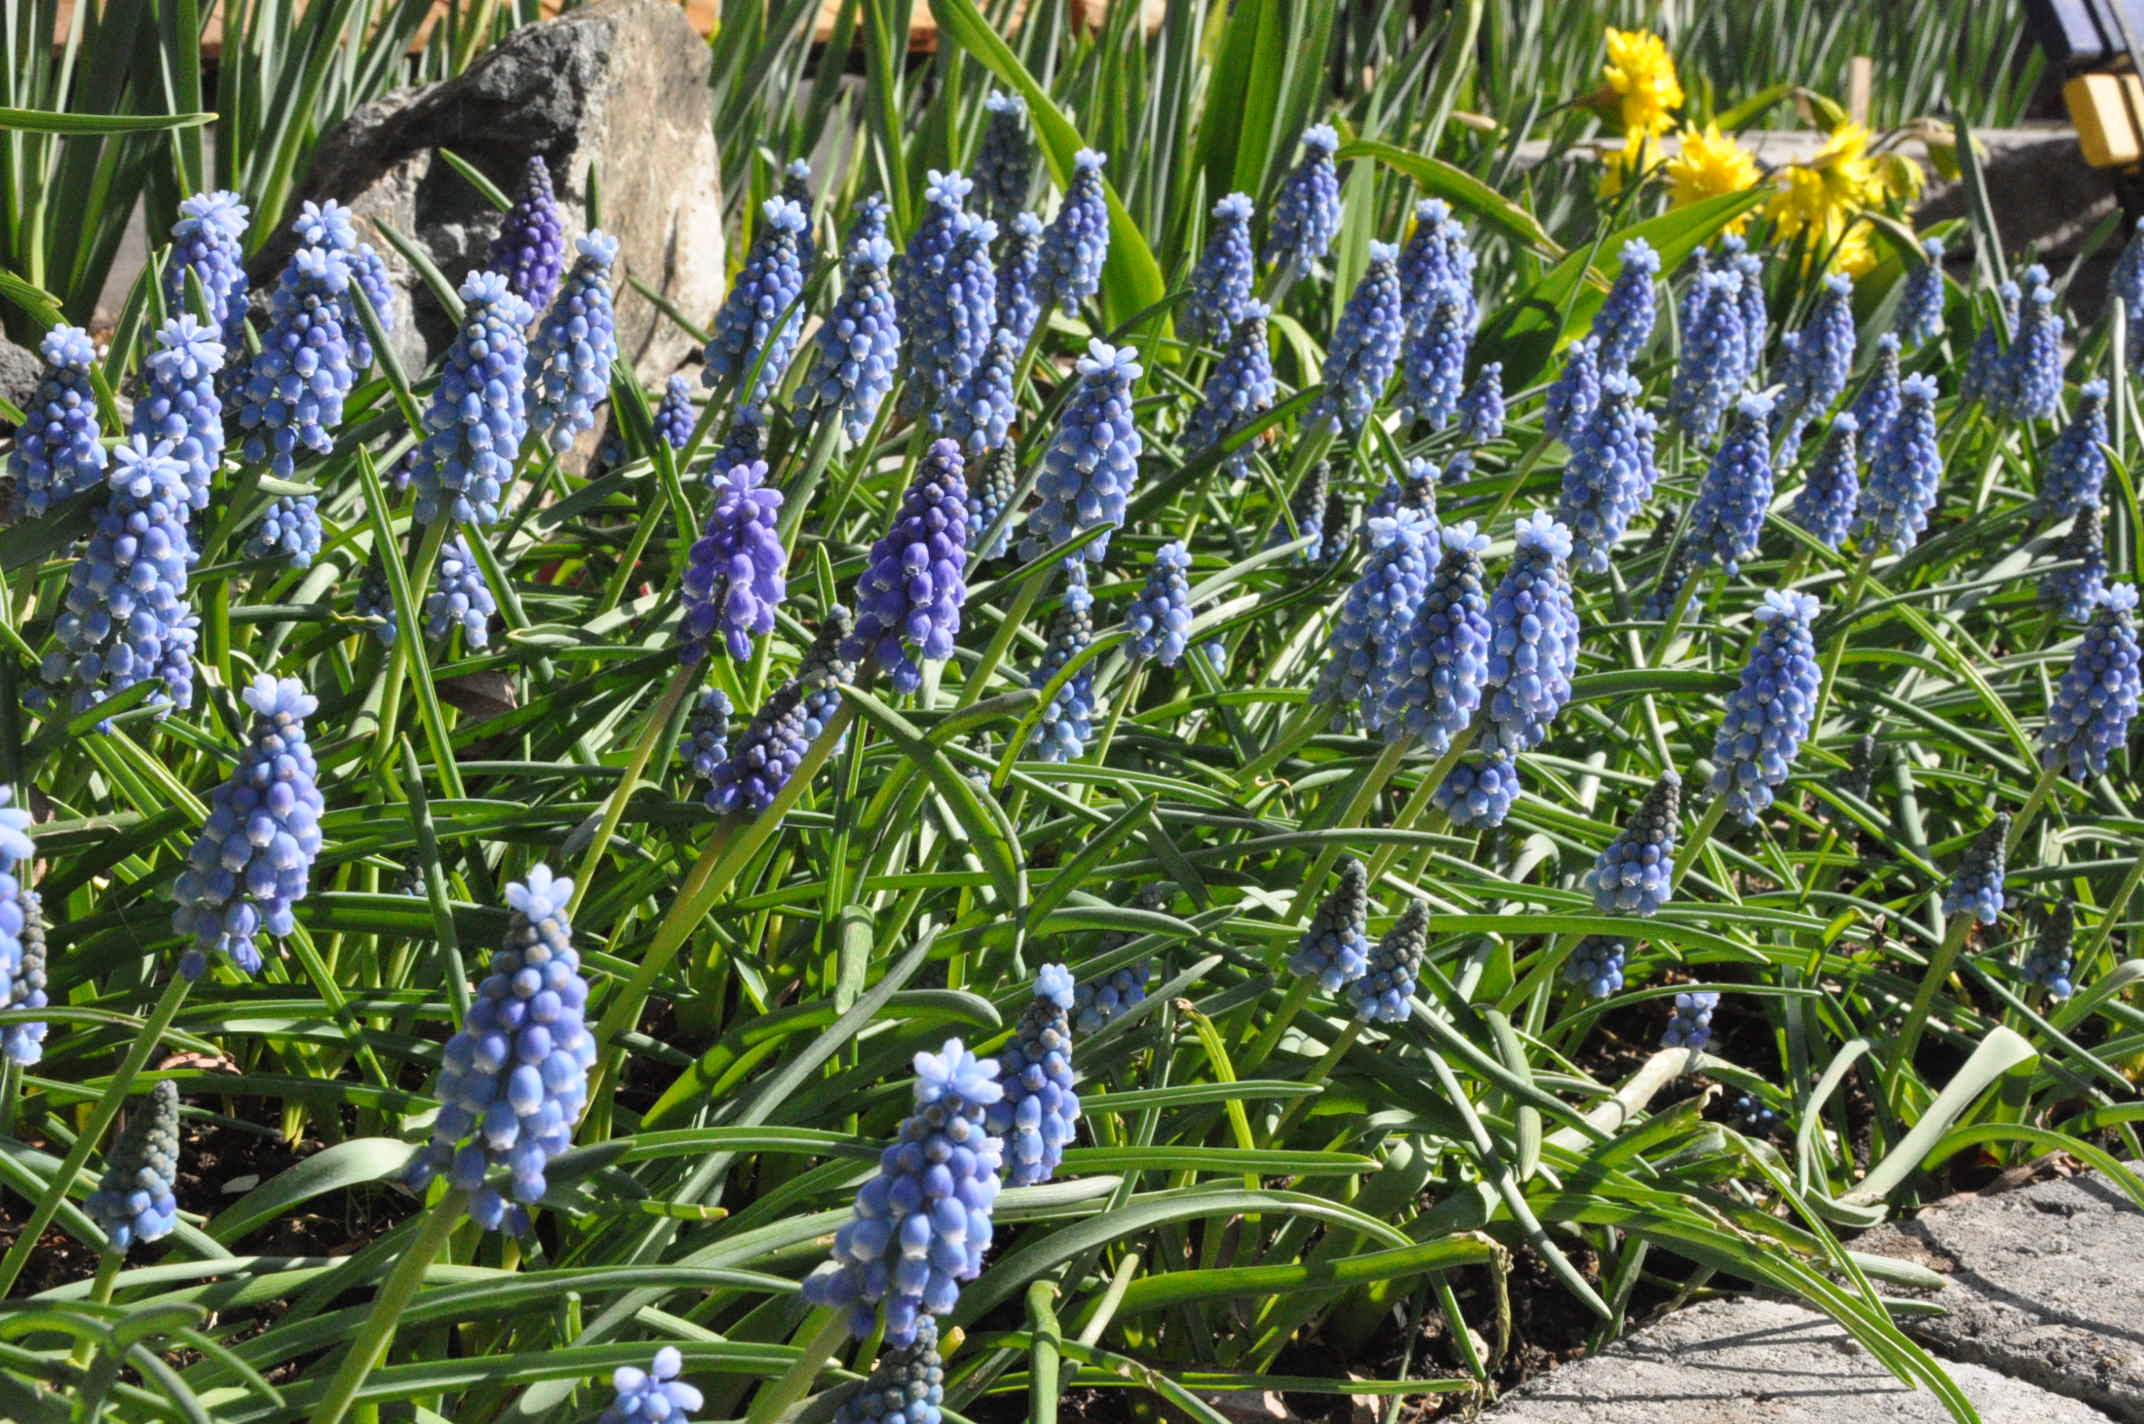 River of Muscari?